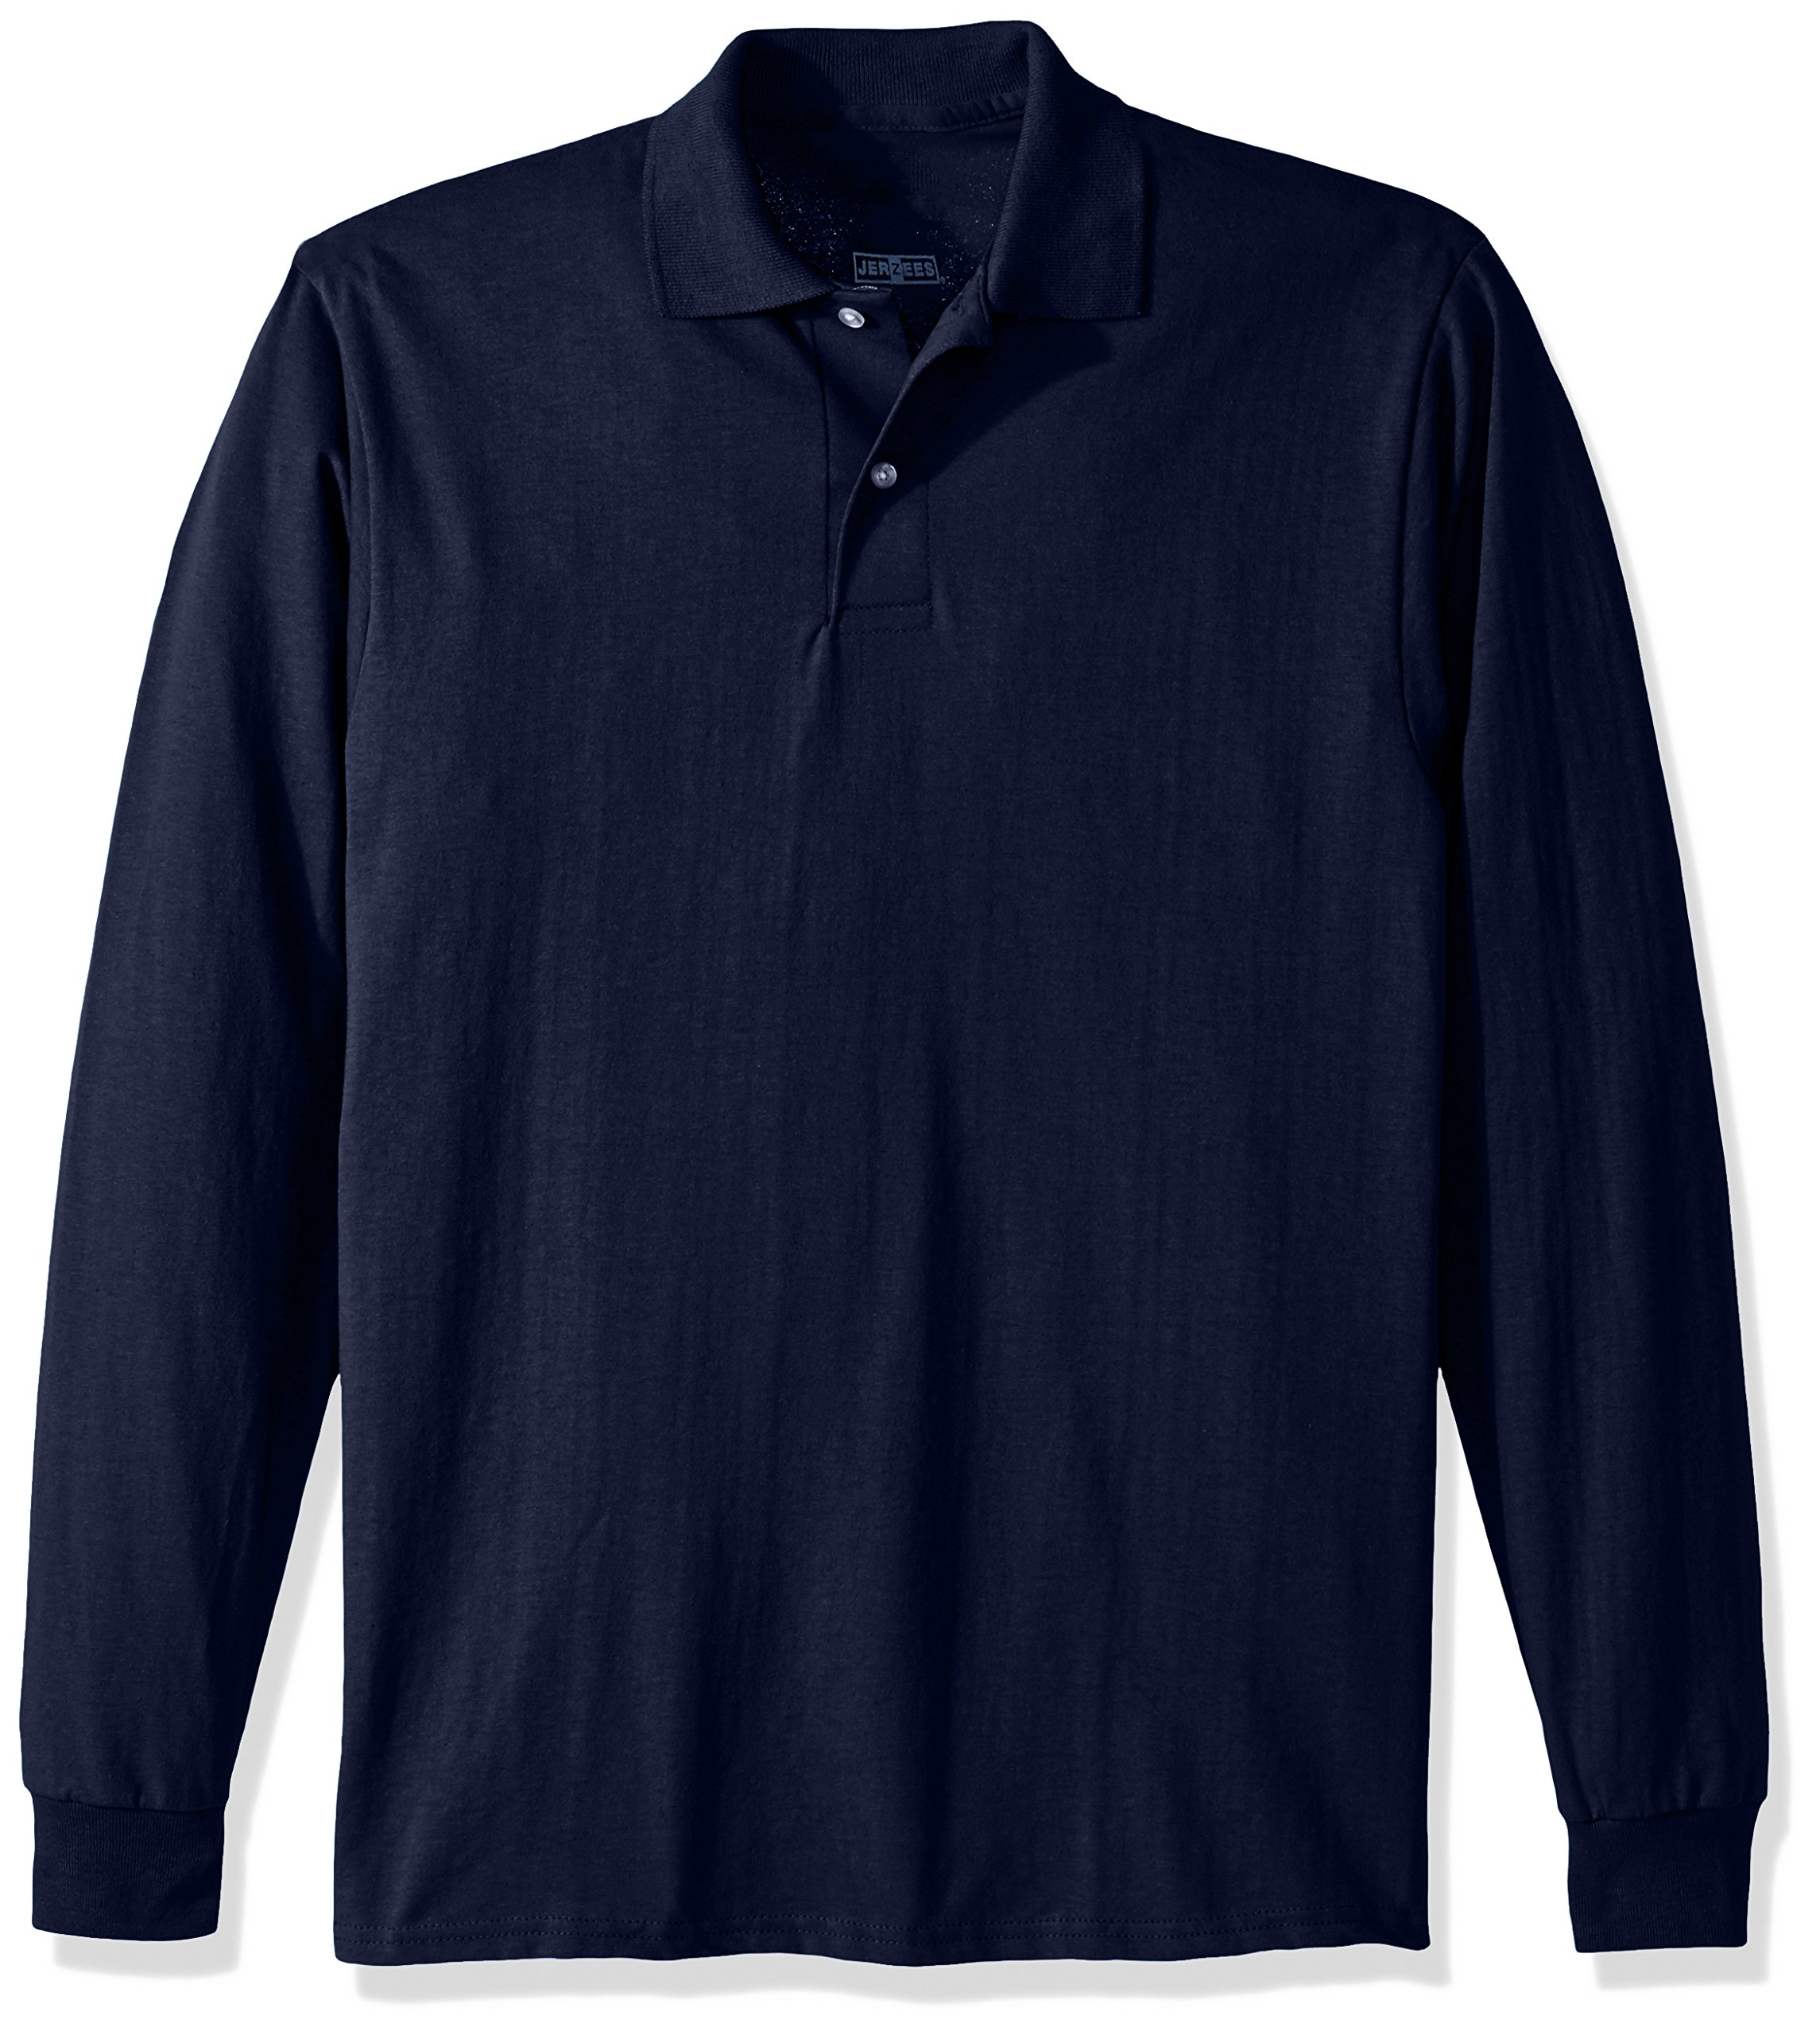 Jerzees Men's Spot Shield Long Sleeve Polo Sport Shirt